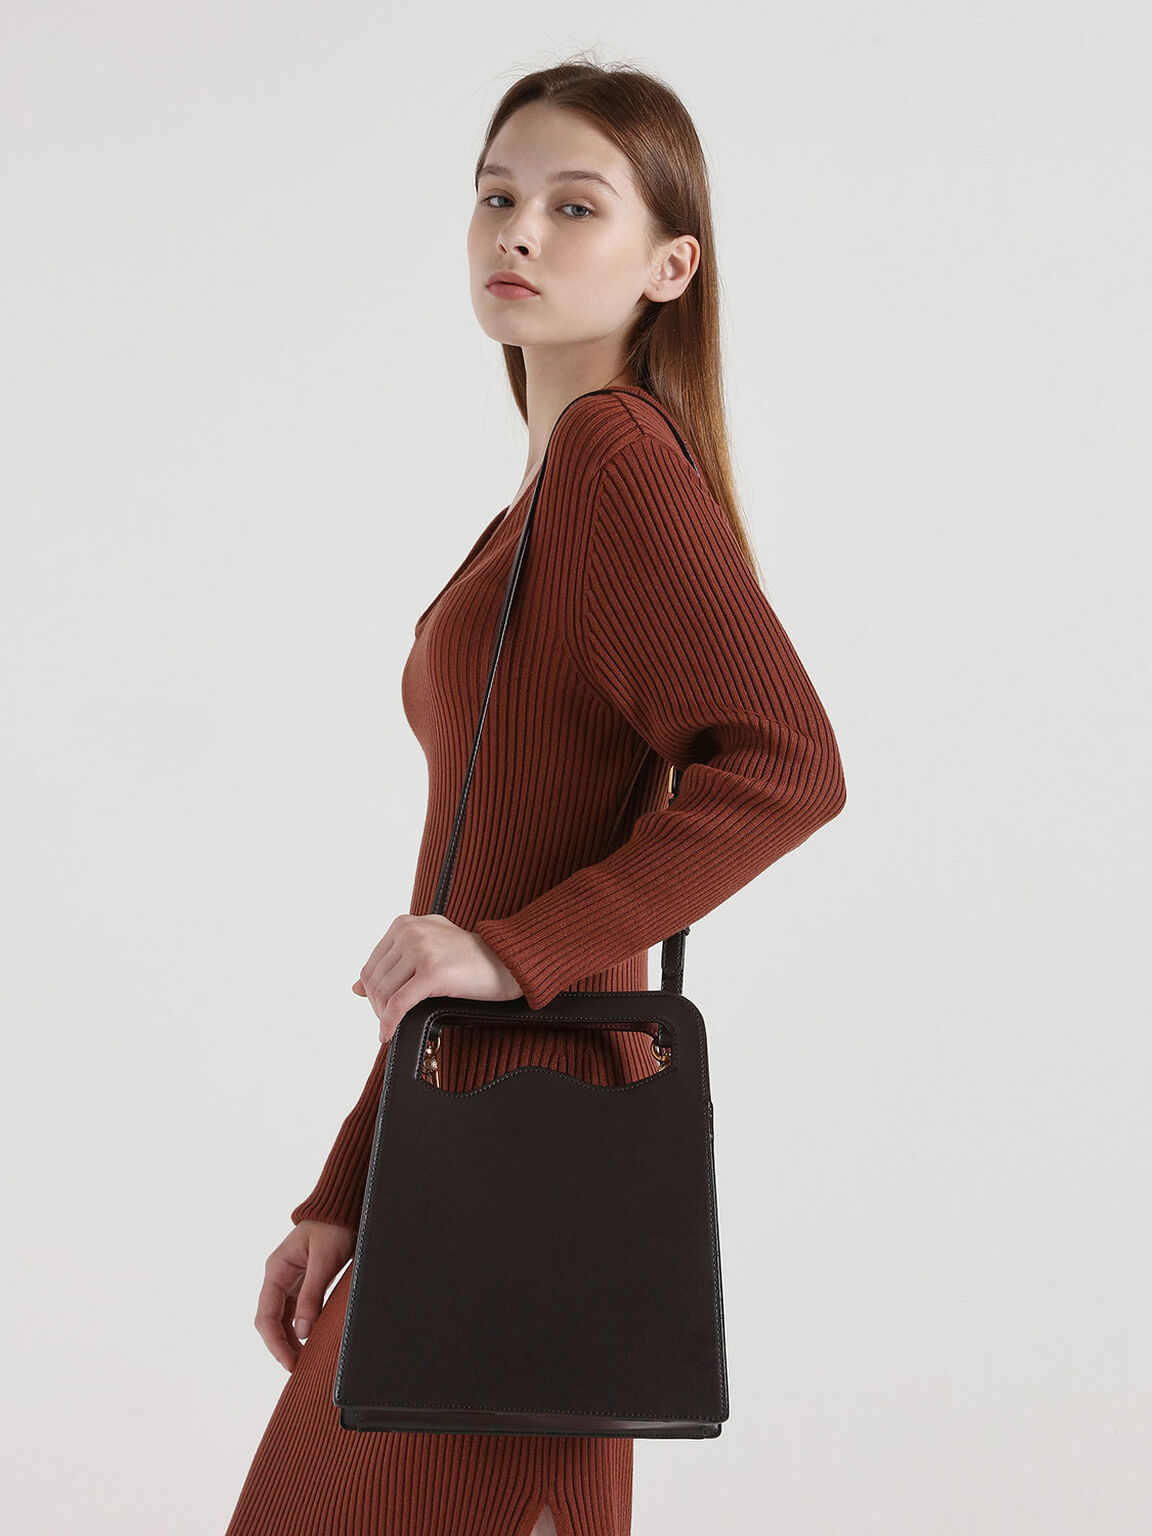 Asymmetric-Cut Top Handle Tote Bag, Dark Brown, hi-res